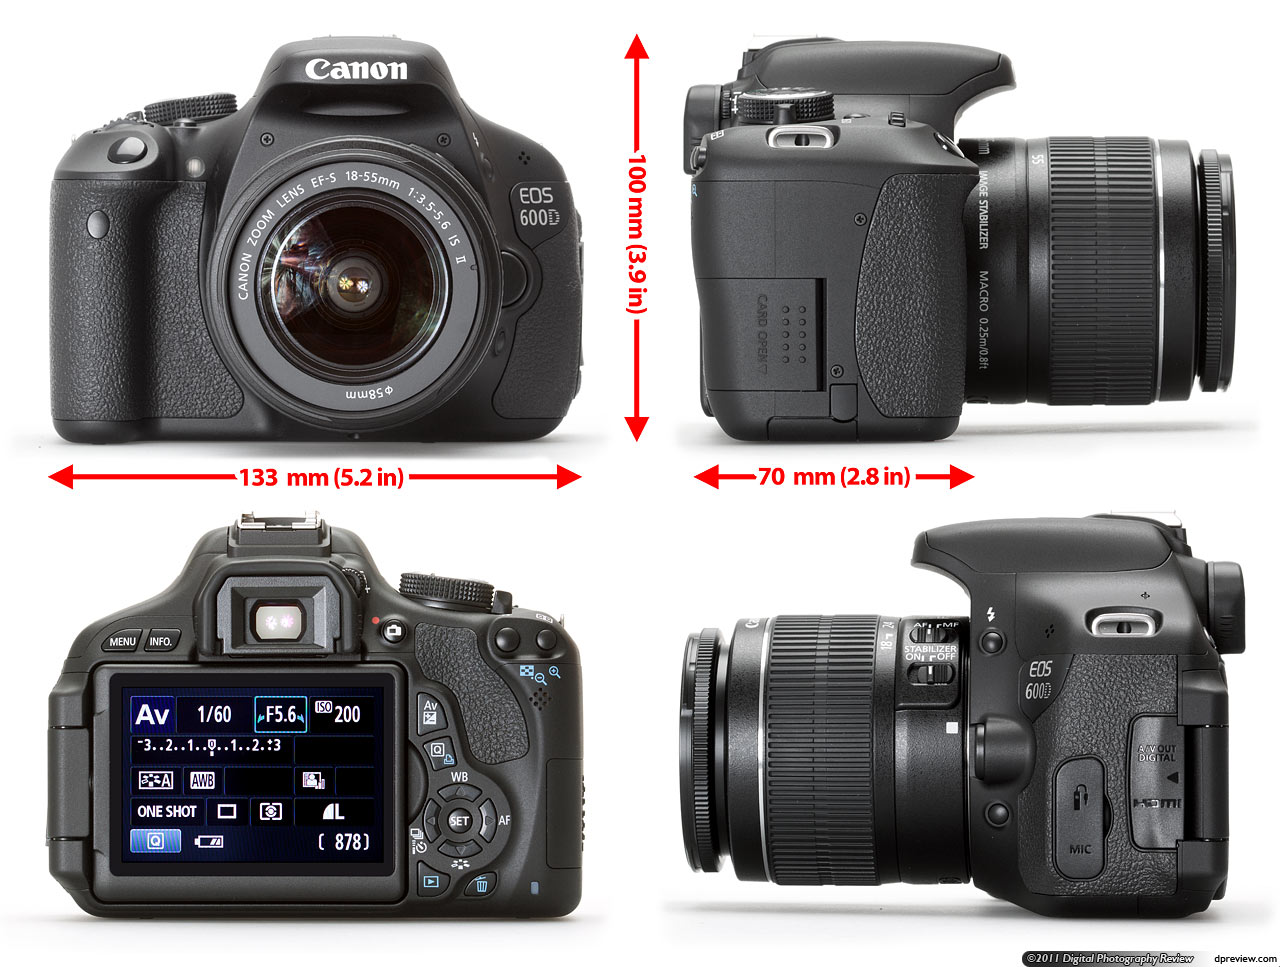 canon rebel t3i eos 600d review digital photography review. Black Bedroom Furniture Sets. Home Design Ideas